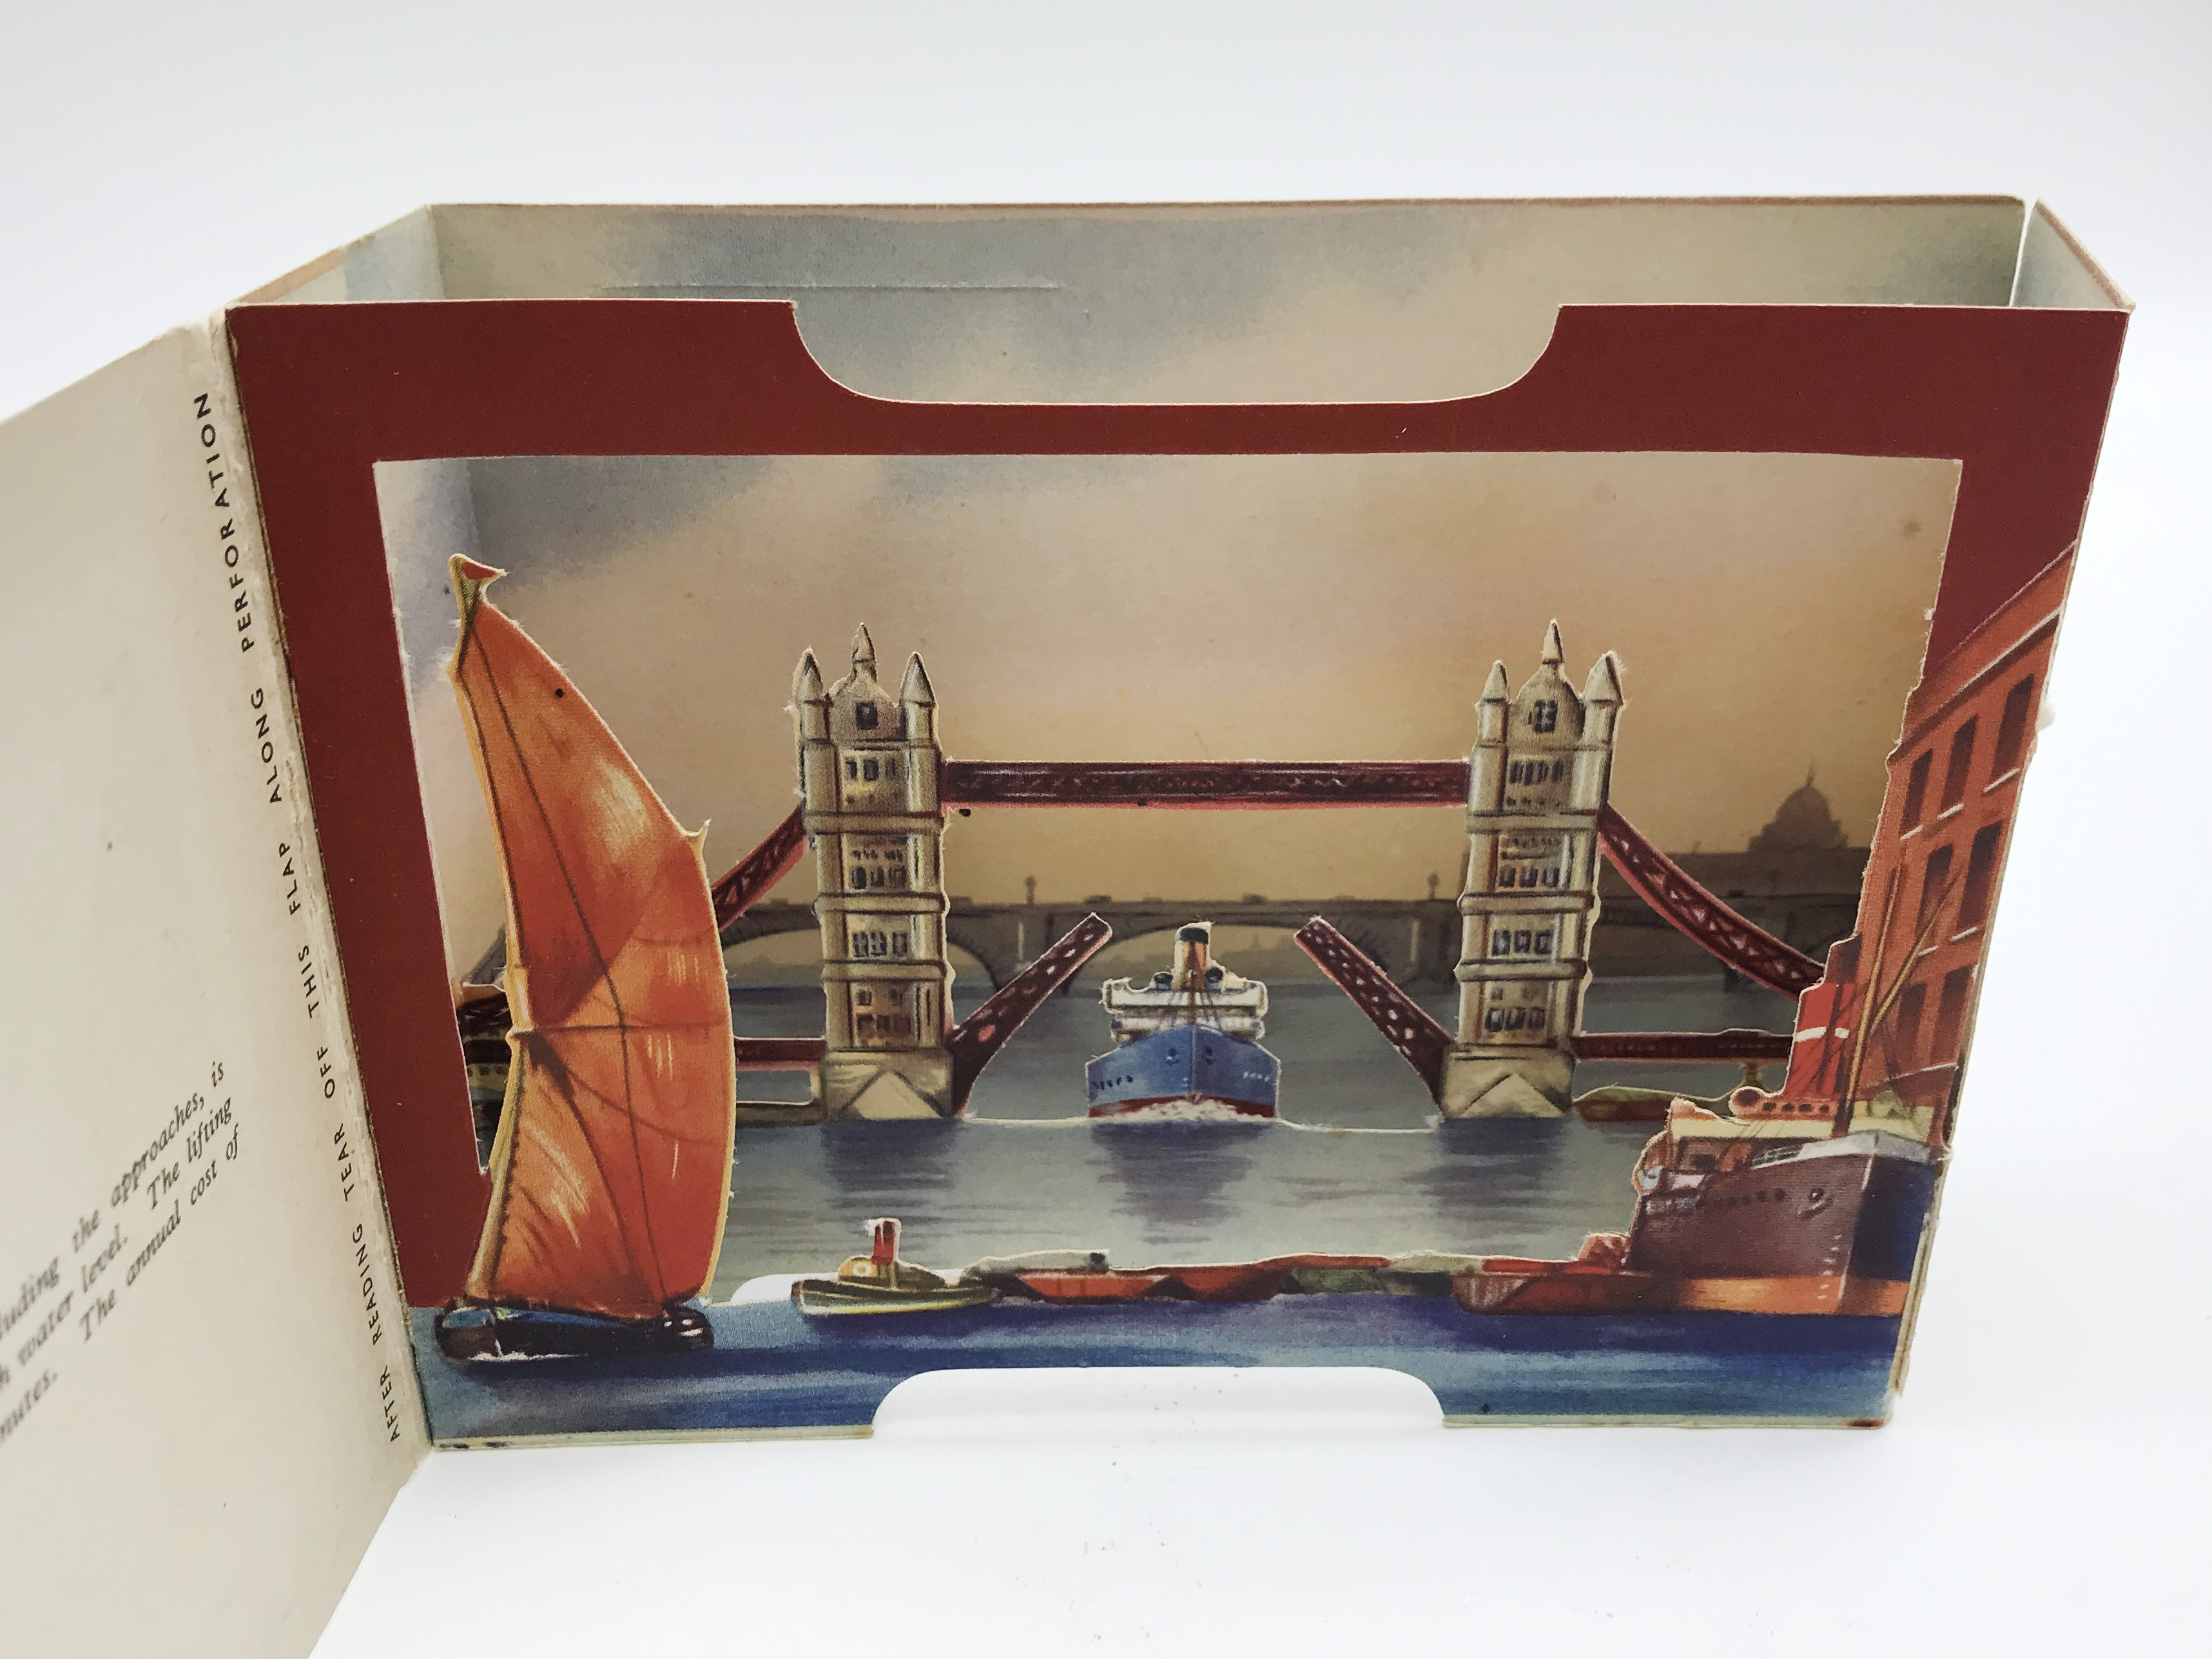 FIVE LONDON POSTCARDS - THE BRENT SERIES OF PANORAMIC VIEW CARDS - Image 3 of 13